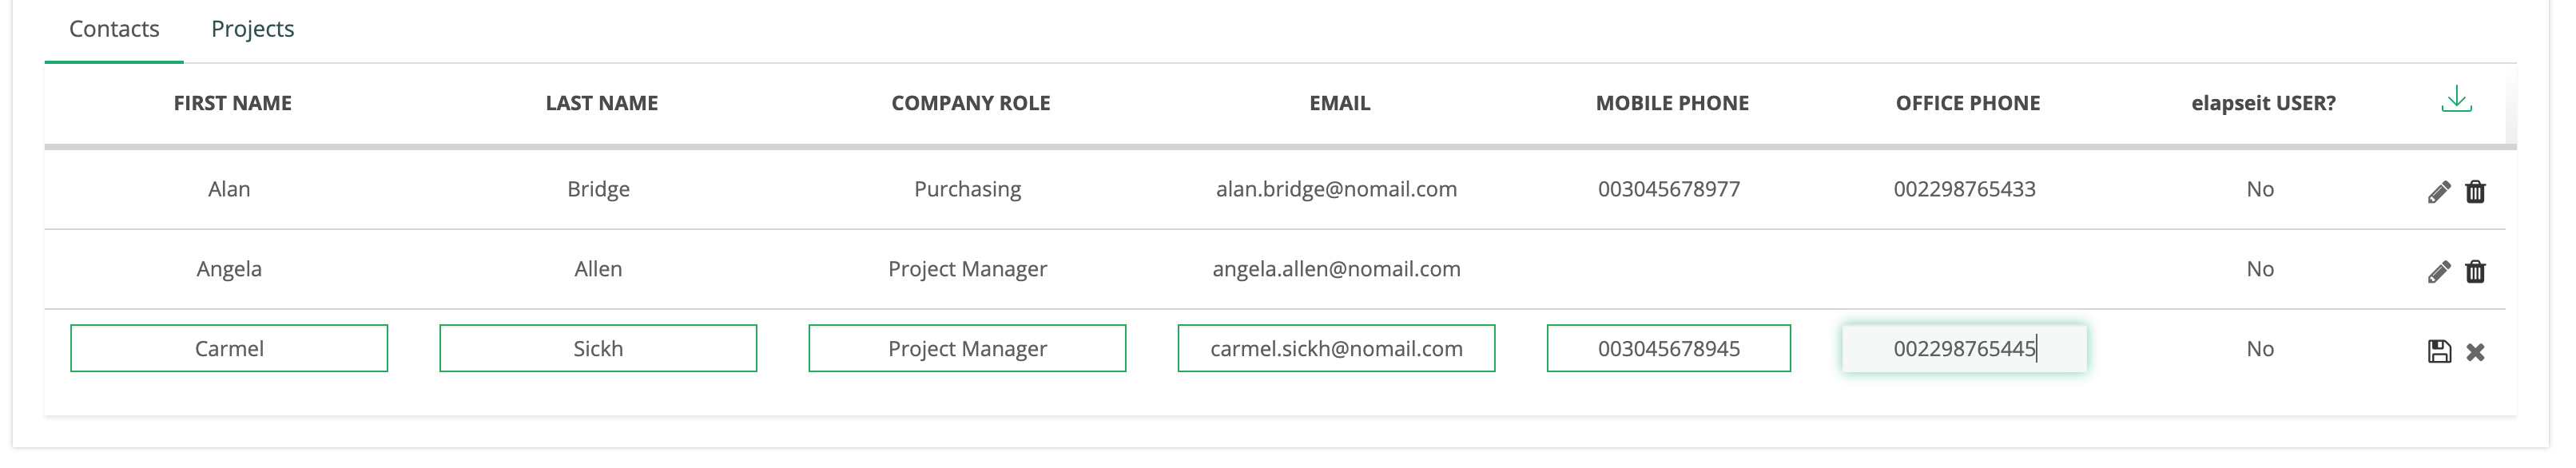 Creat a list of contacts in Client profile